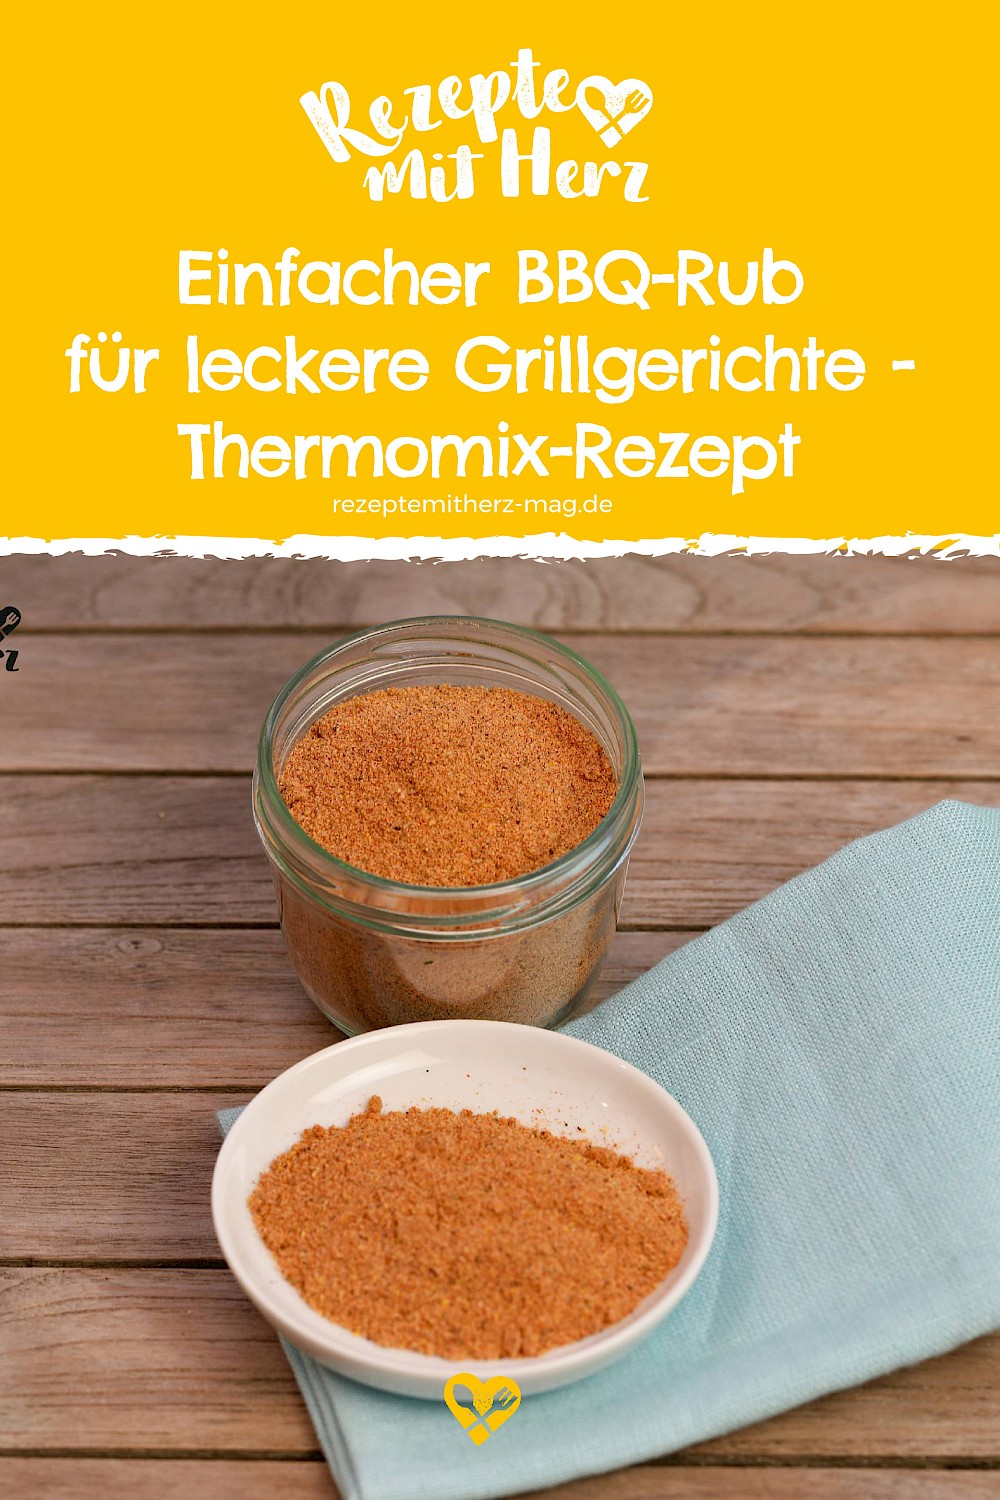 BBQ-Rub - Thermomix-Rezept